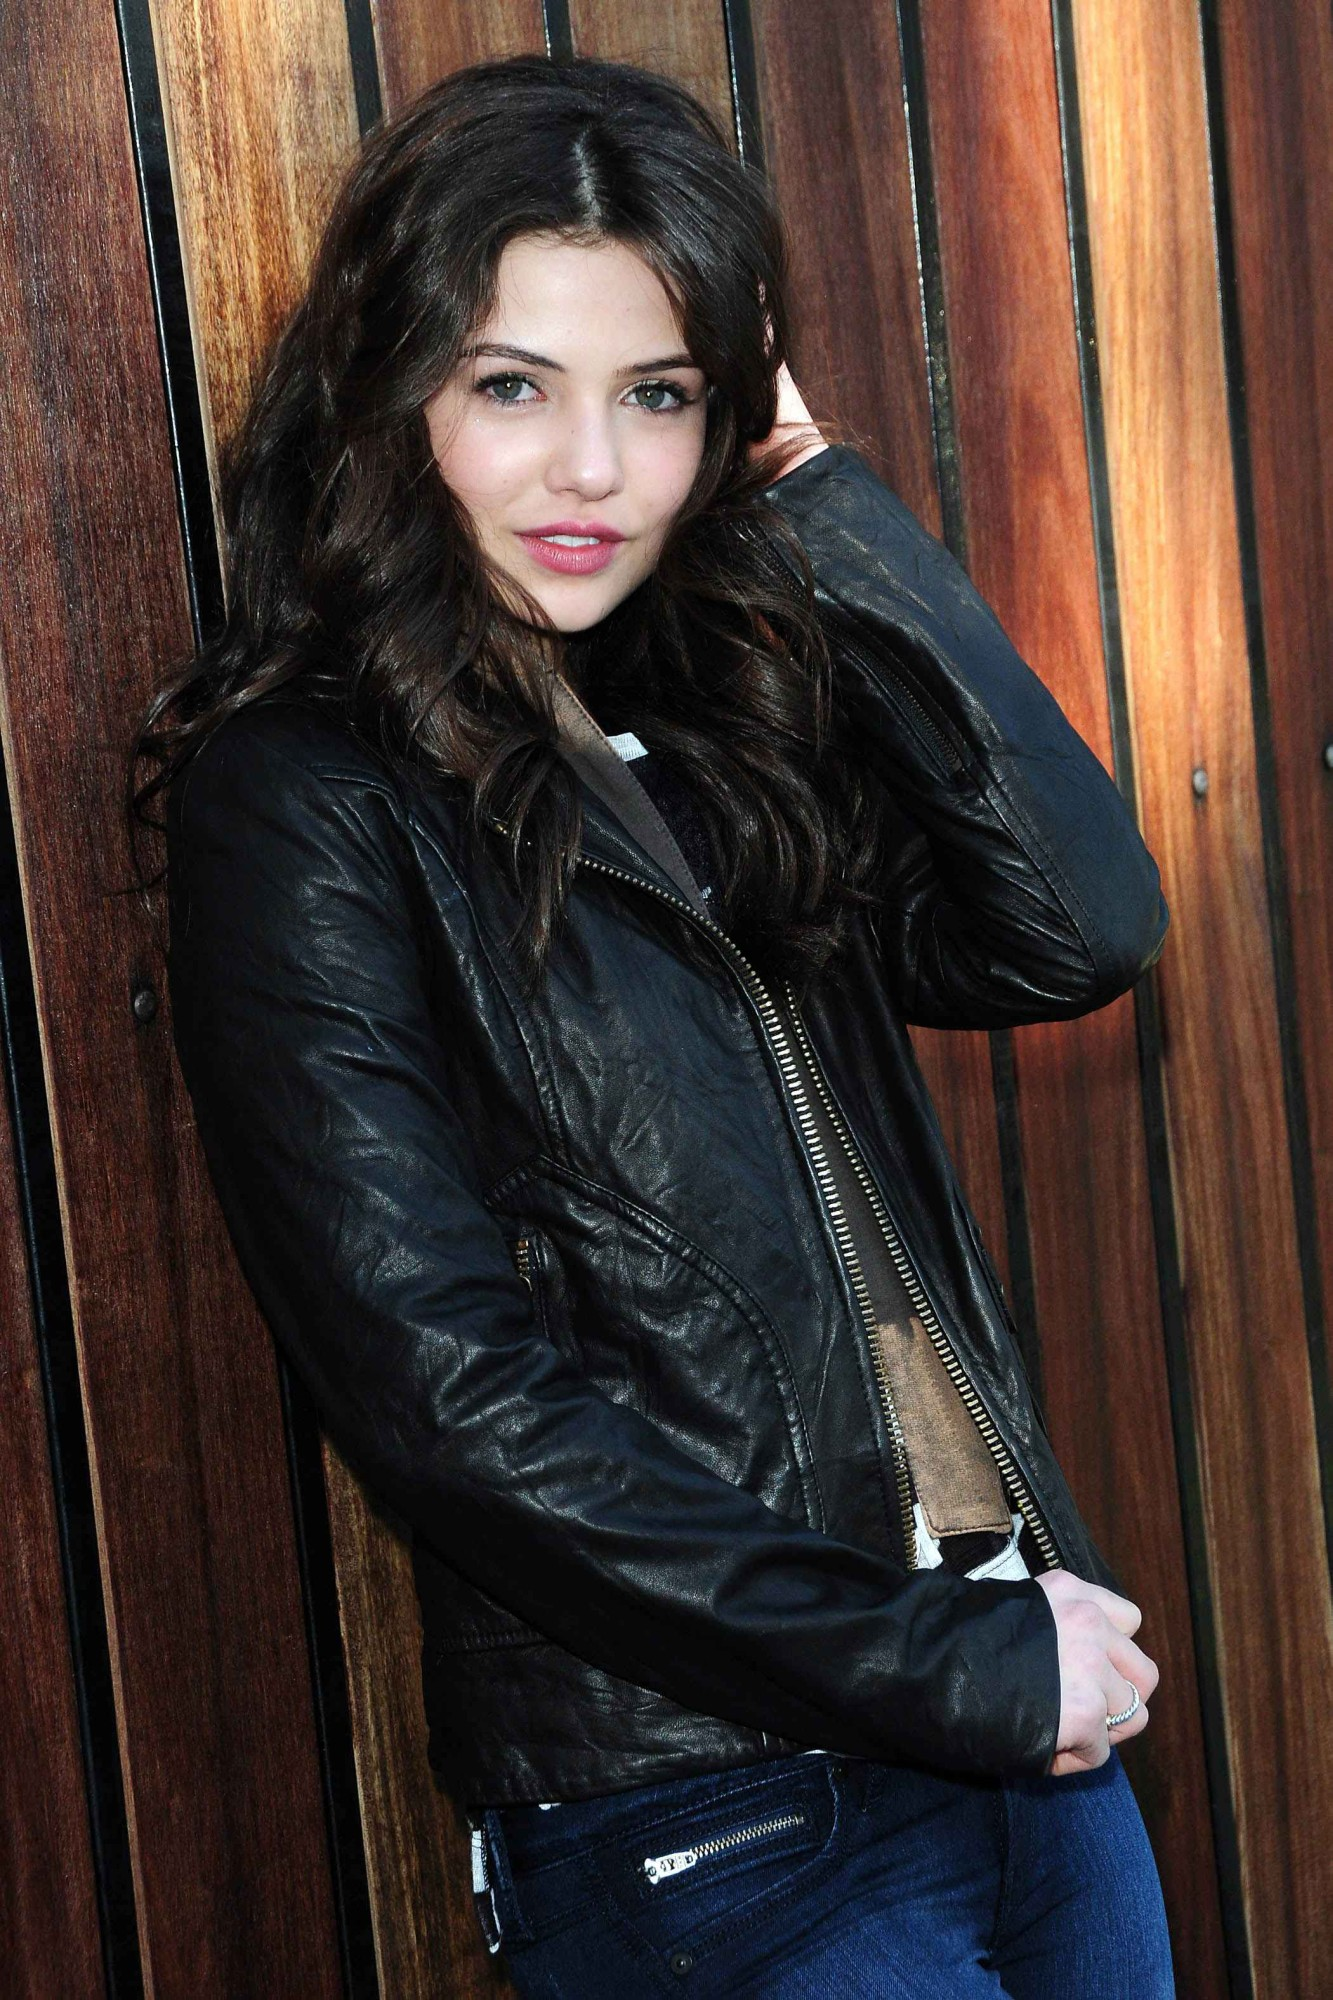 Poze Danielle Campbell Actor Poza 14 Din 42 Cinemagia Ro